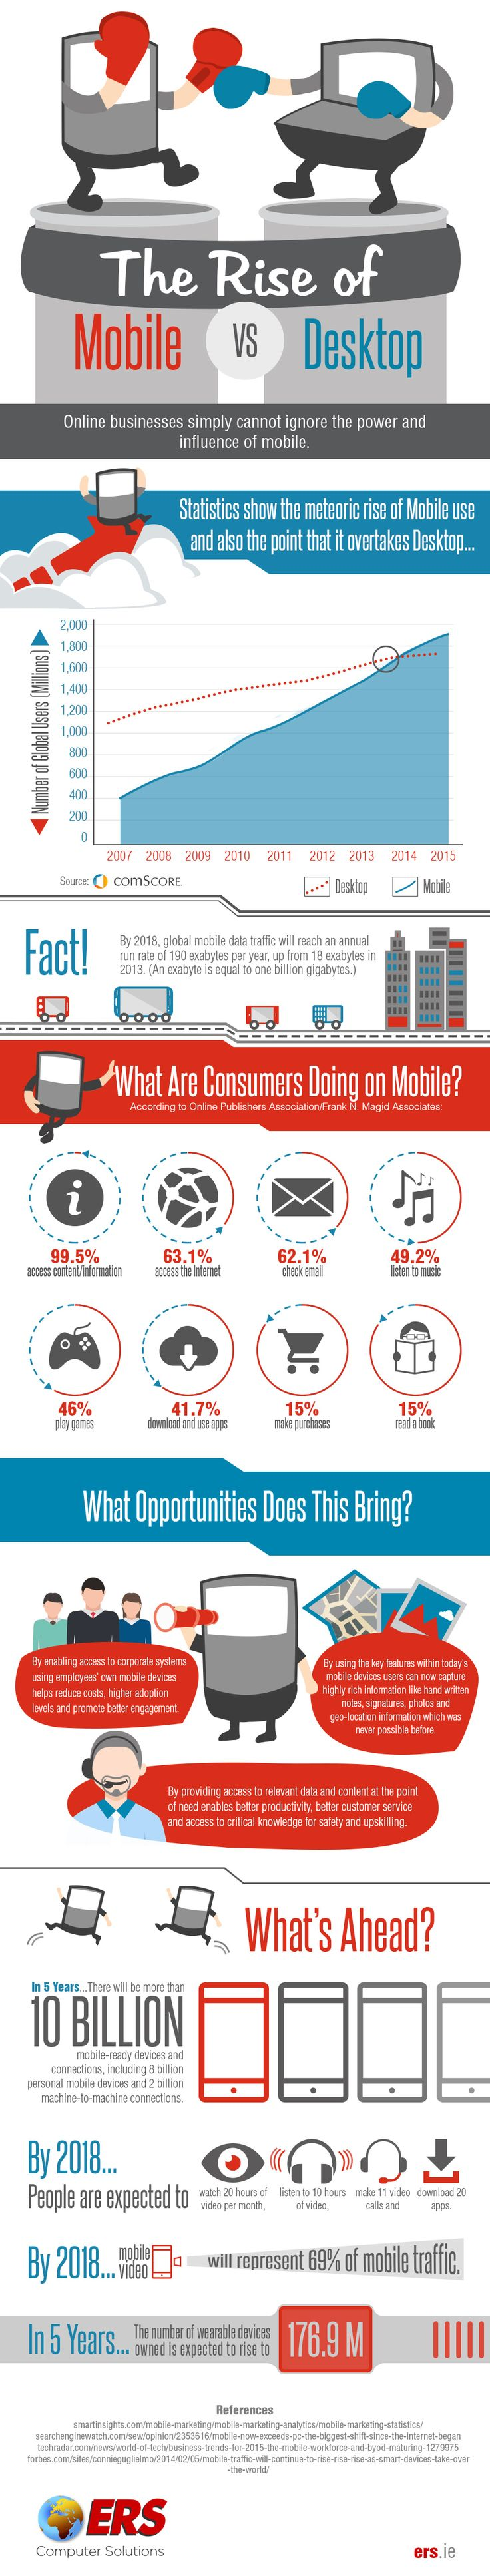 mobile versus desktop http://www.socialmediatoday.com/social-business/aweiner/2015-09-15/mobile-v-desktop-what-any-online-business-should-know-infographic